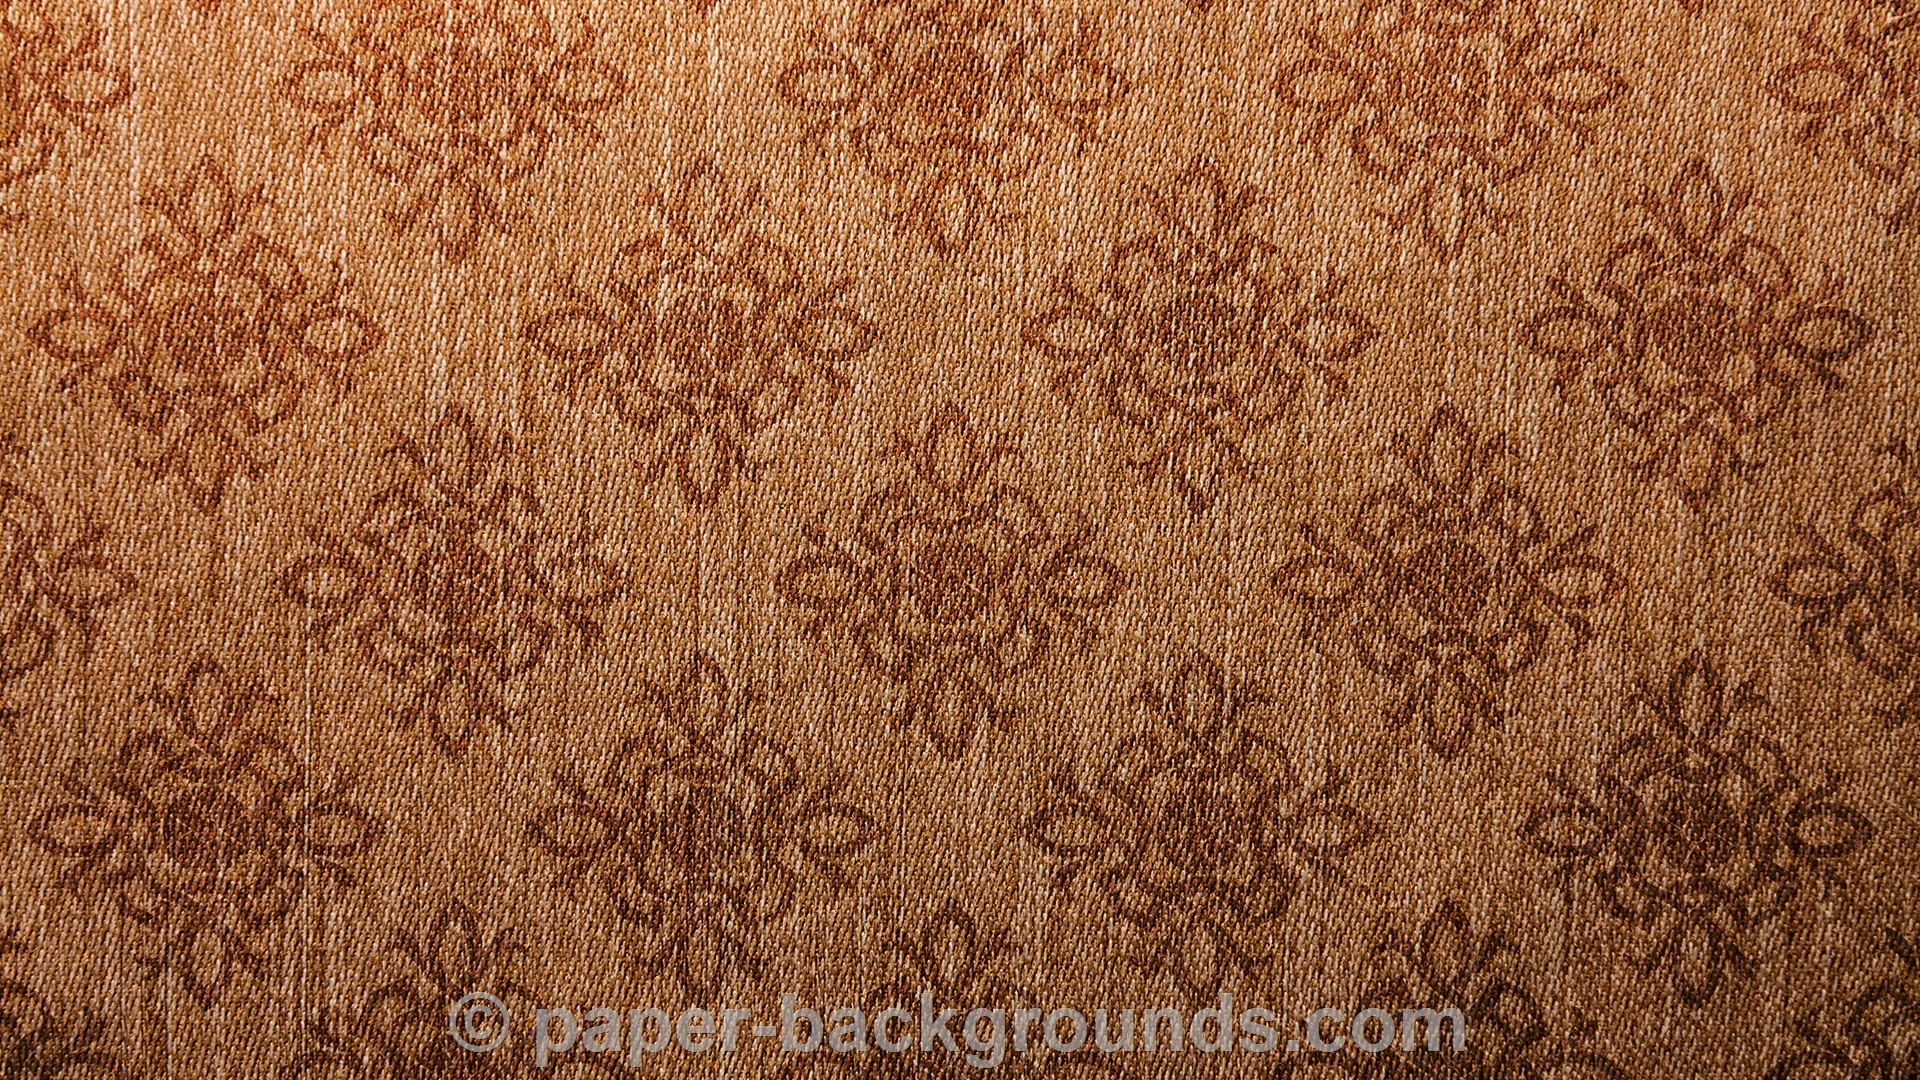 Damask Vintage Brown Canvas Texture Background HD